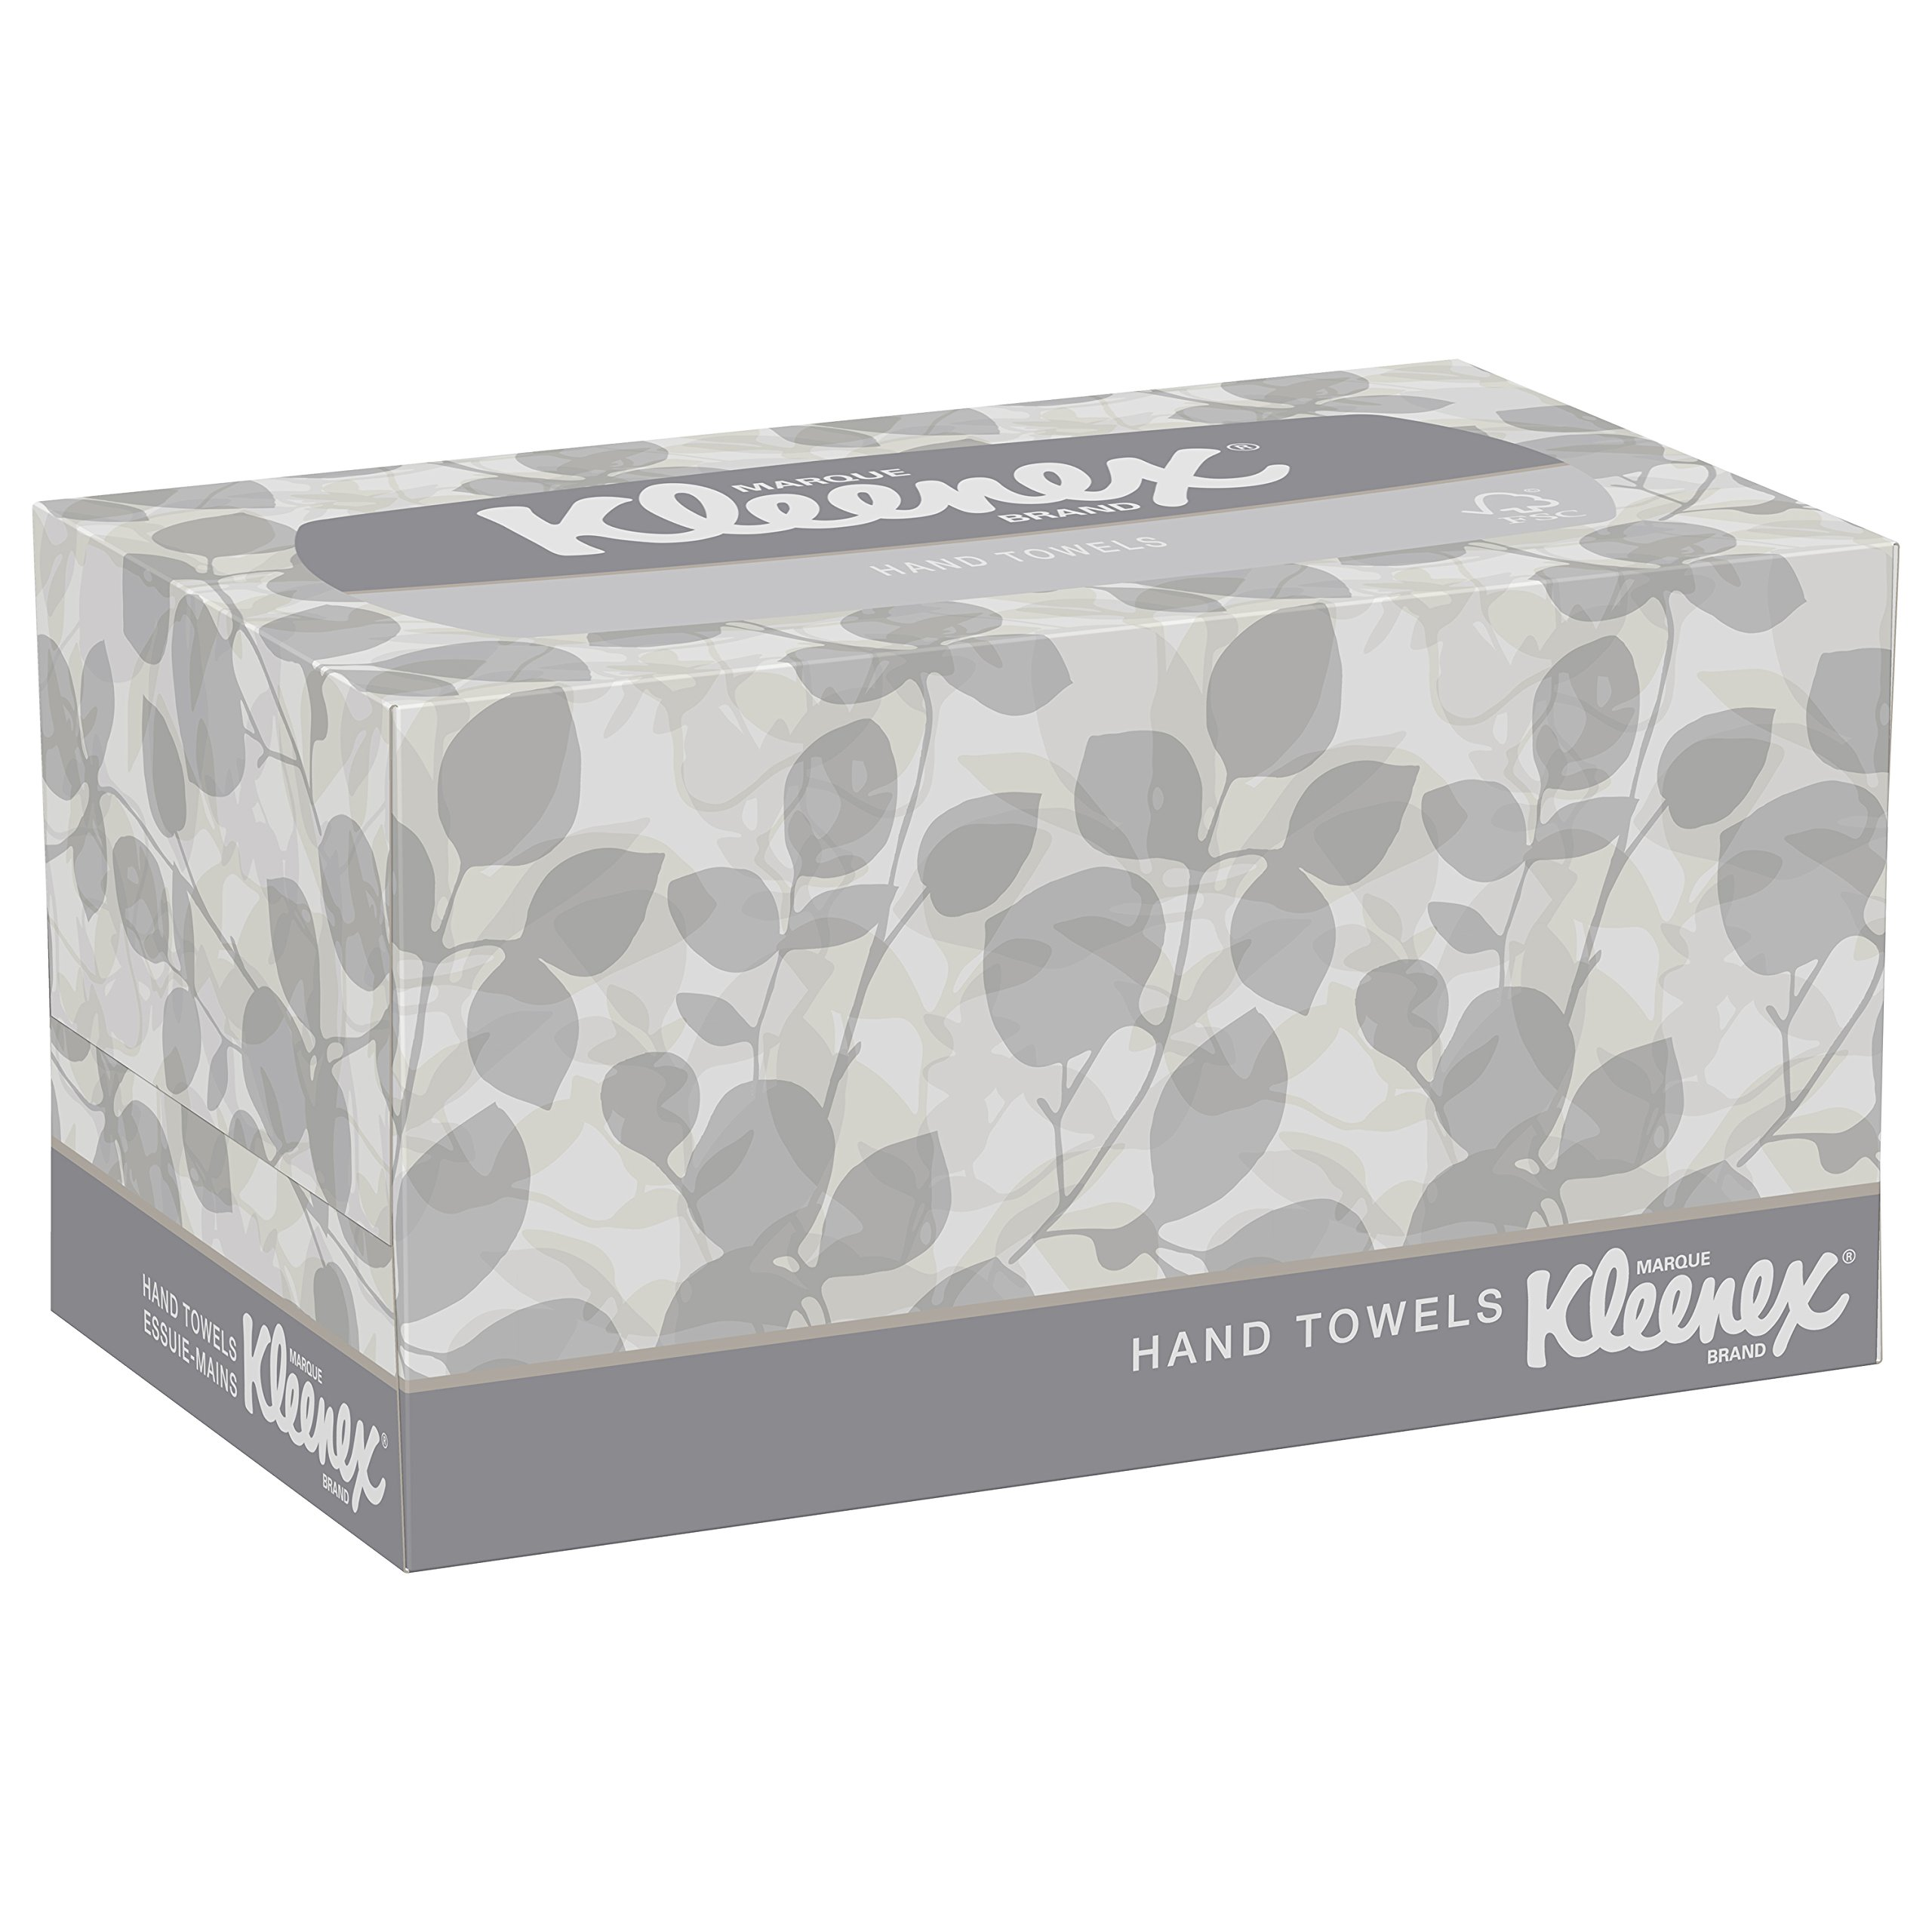 Kleenex Hand Towels with Premium Absorbency Pockets (01701), Hygienic Countertop Pop-Up Box, White, 120 Sheets/Carton, 18 Cartons/Case